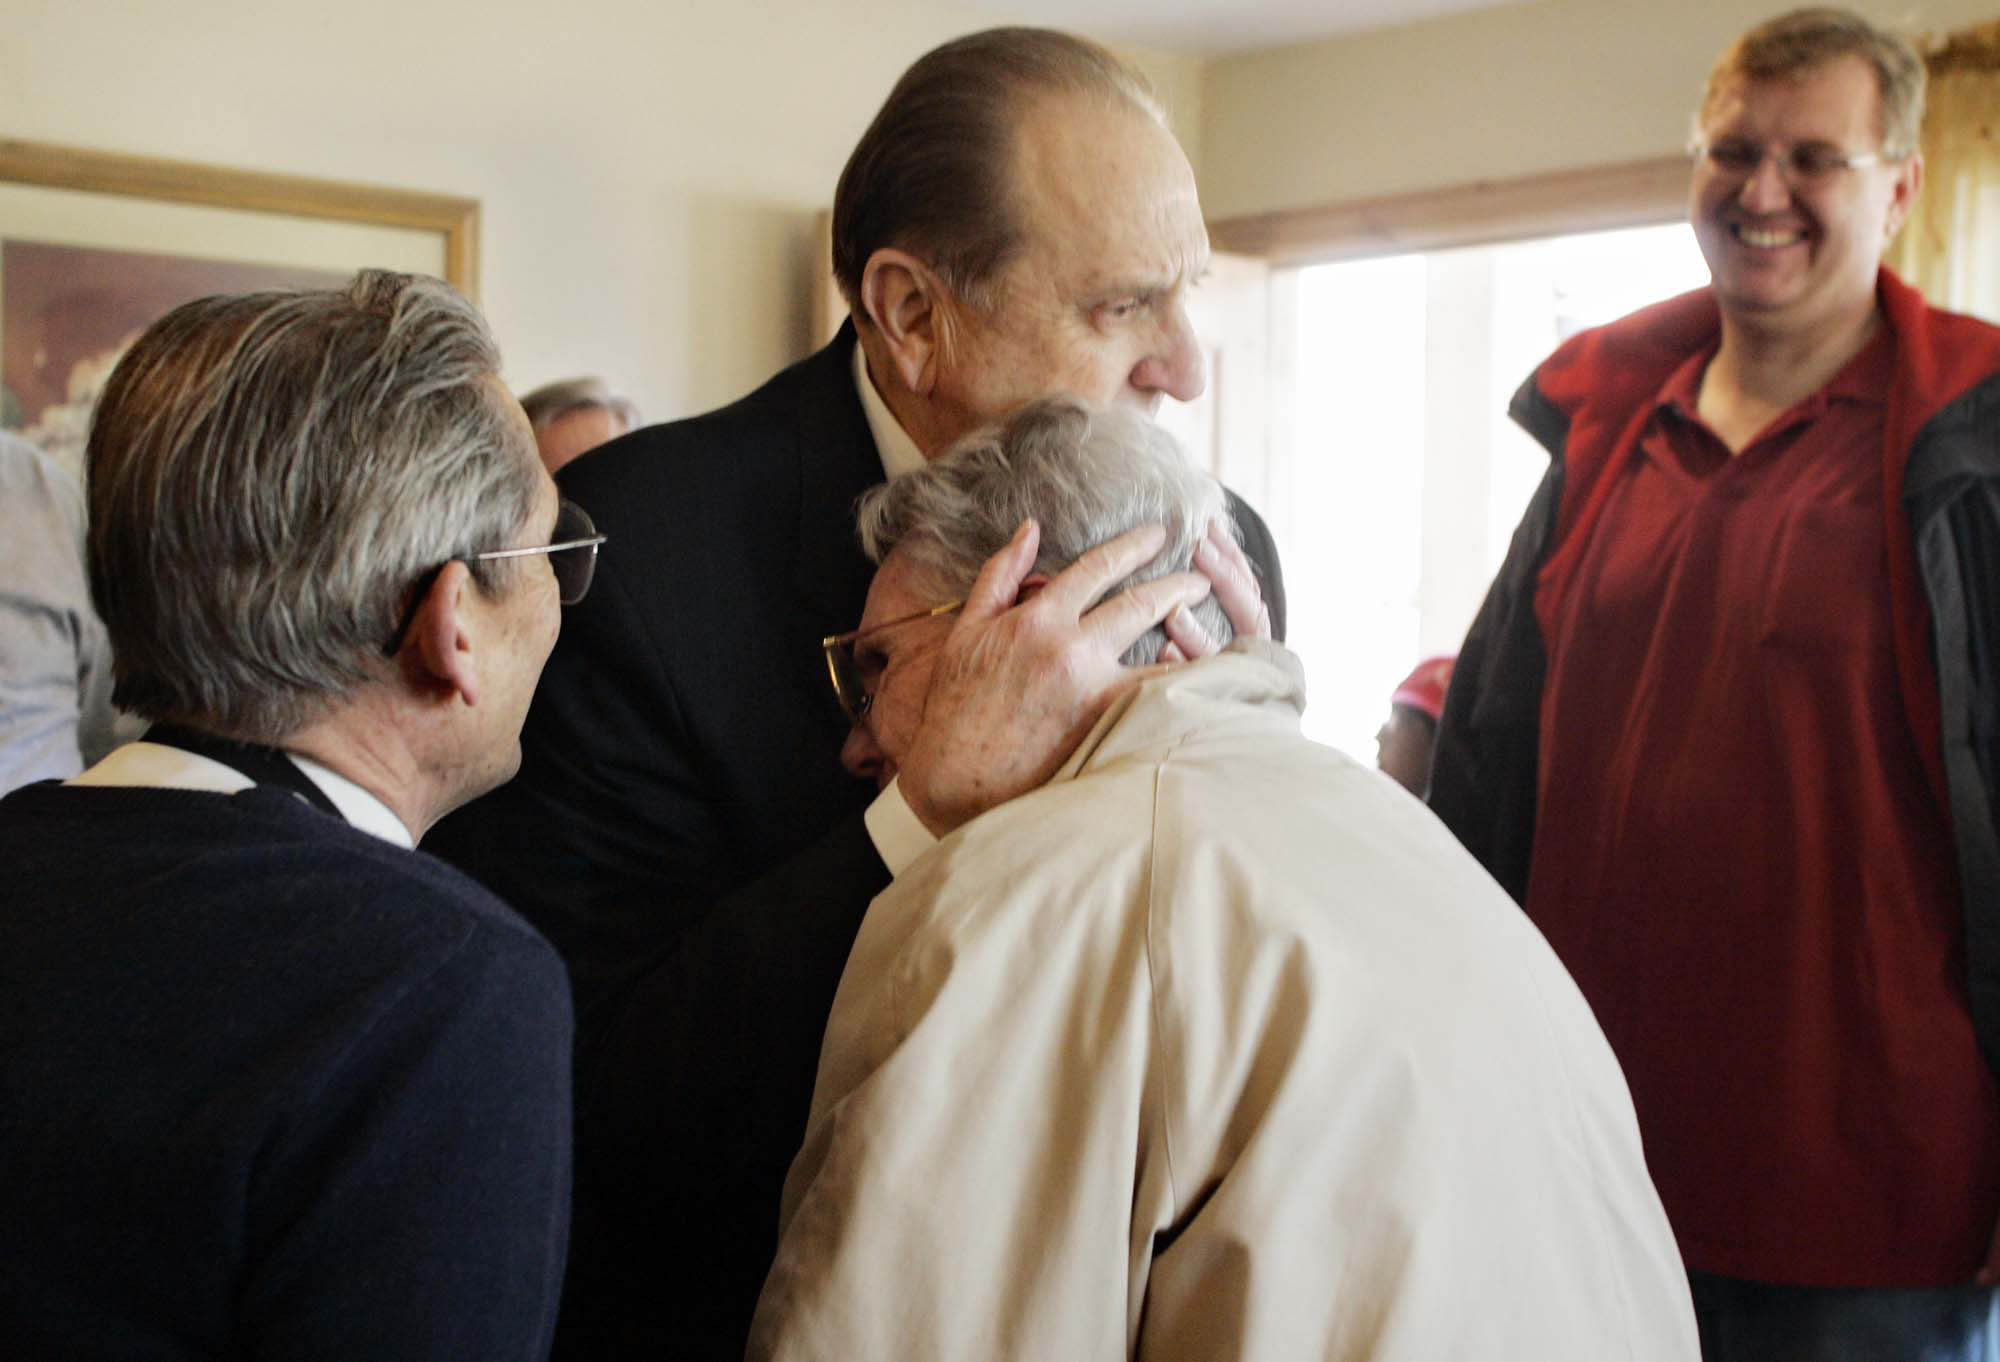 (Tribune file photo) President Thomas S. Monson embraces Adele Putnam after her familyÕs home was renovated as part of the Gingerbread House Project in 2005.